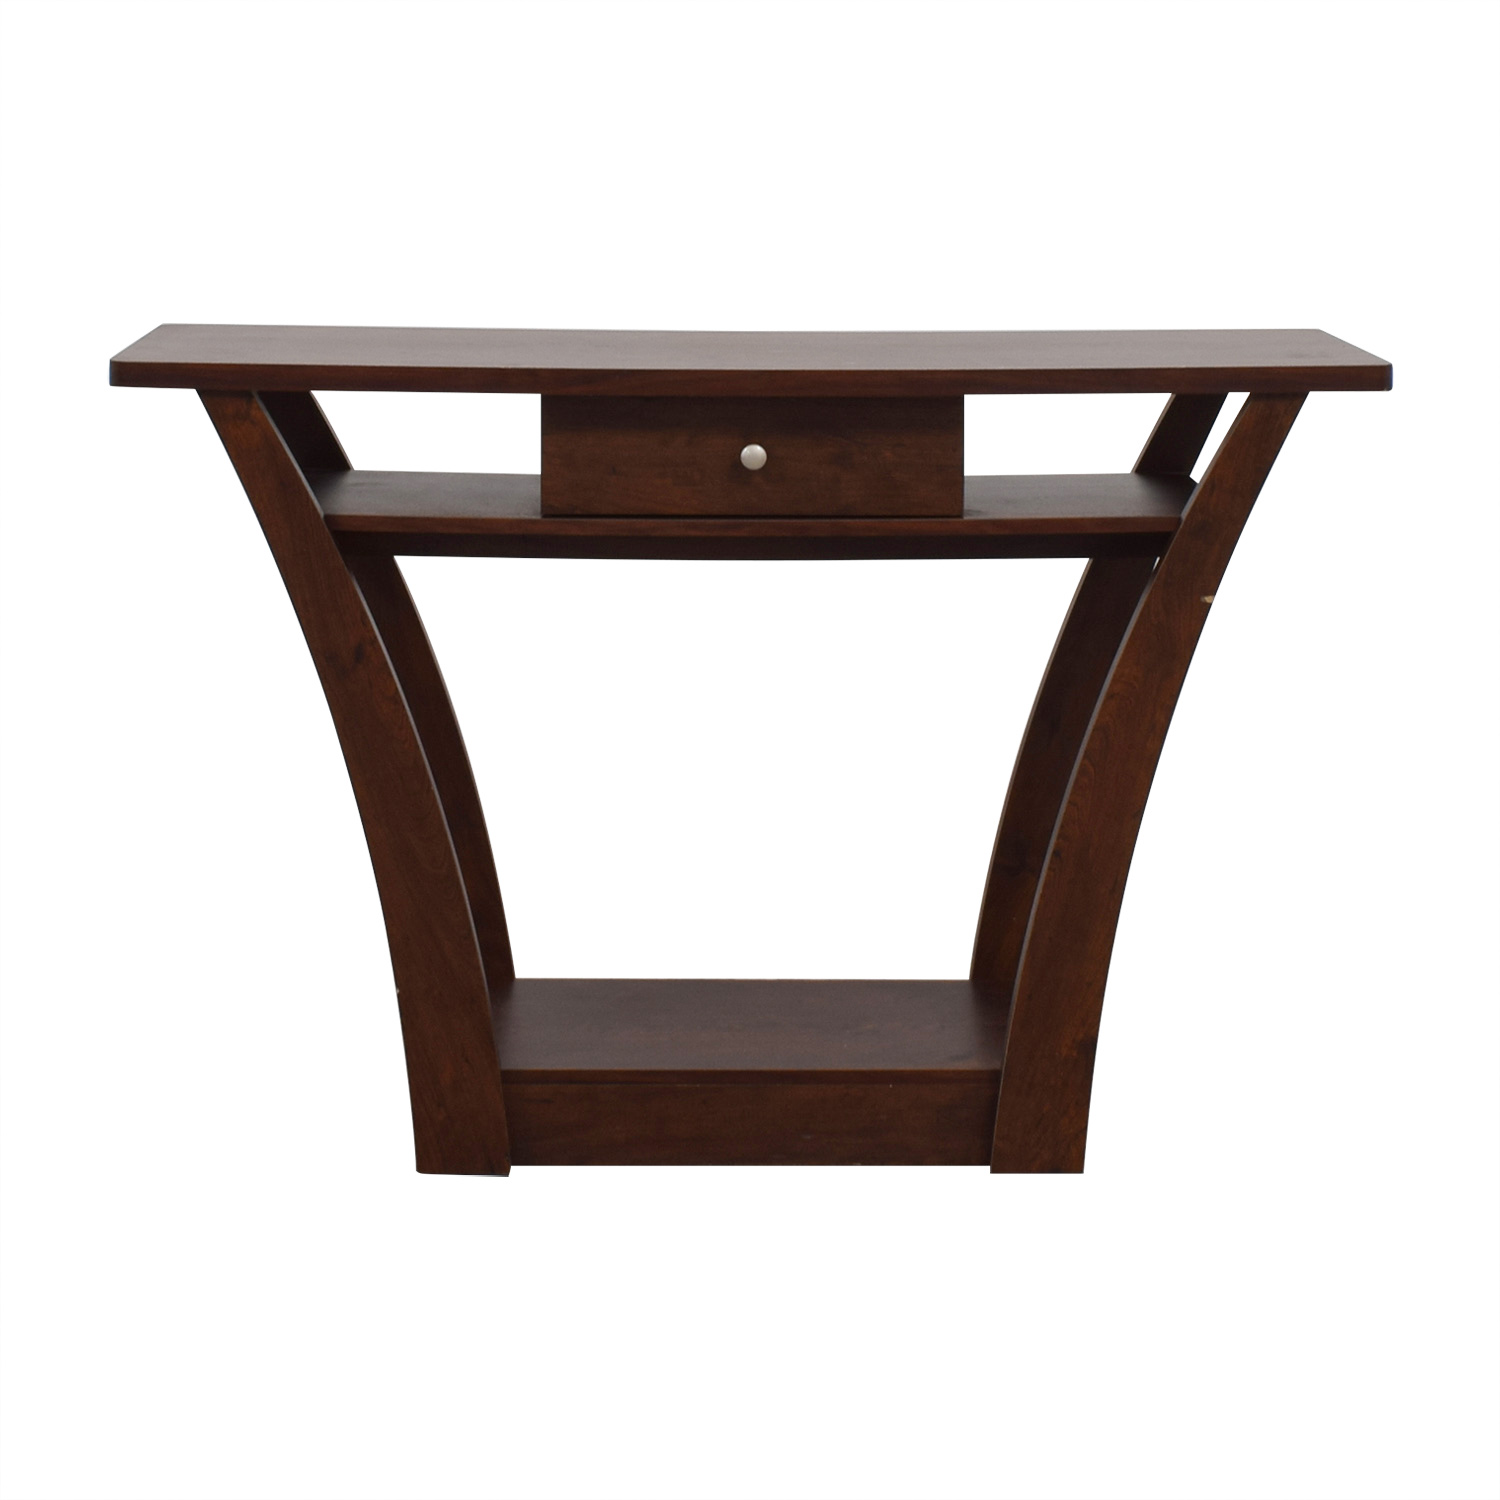 Wayfair Wayfair Wood Single Drawer Console Table second hand